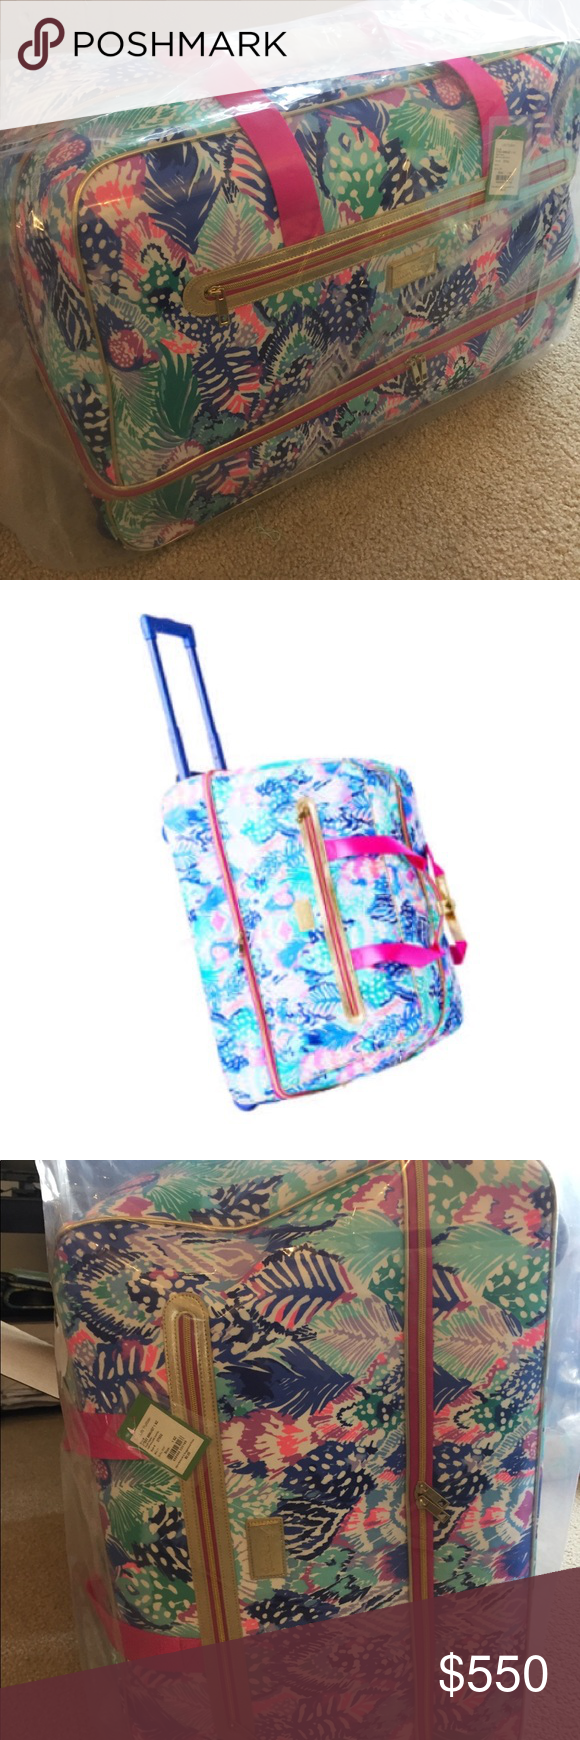 5055a2ef4c NWT Lilly Pulitzer Rolling Oversized Duffel bag Printed Rolling Duffel  makes traveling to your next getaway